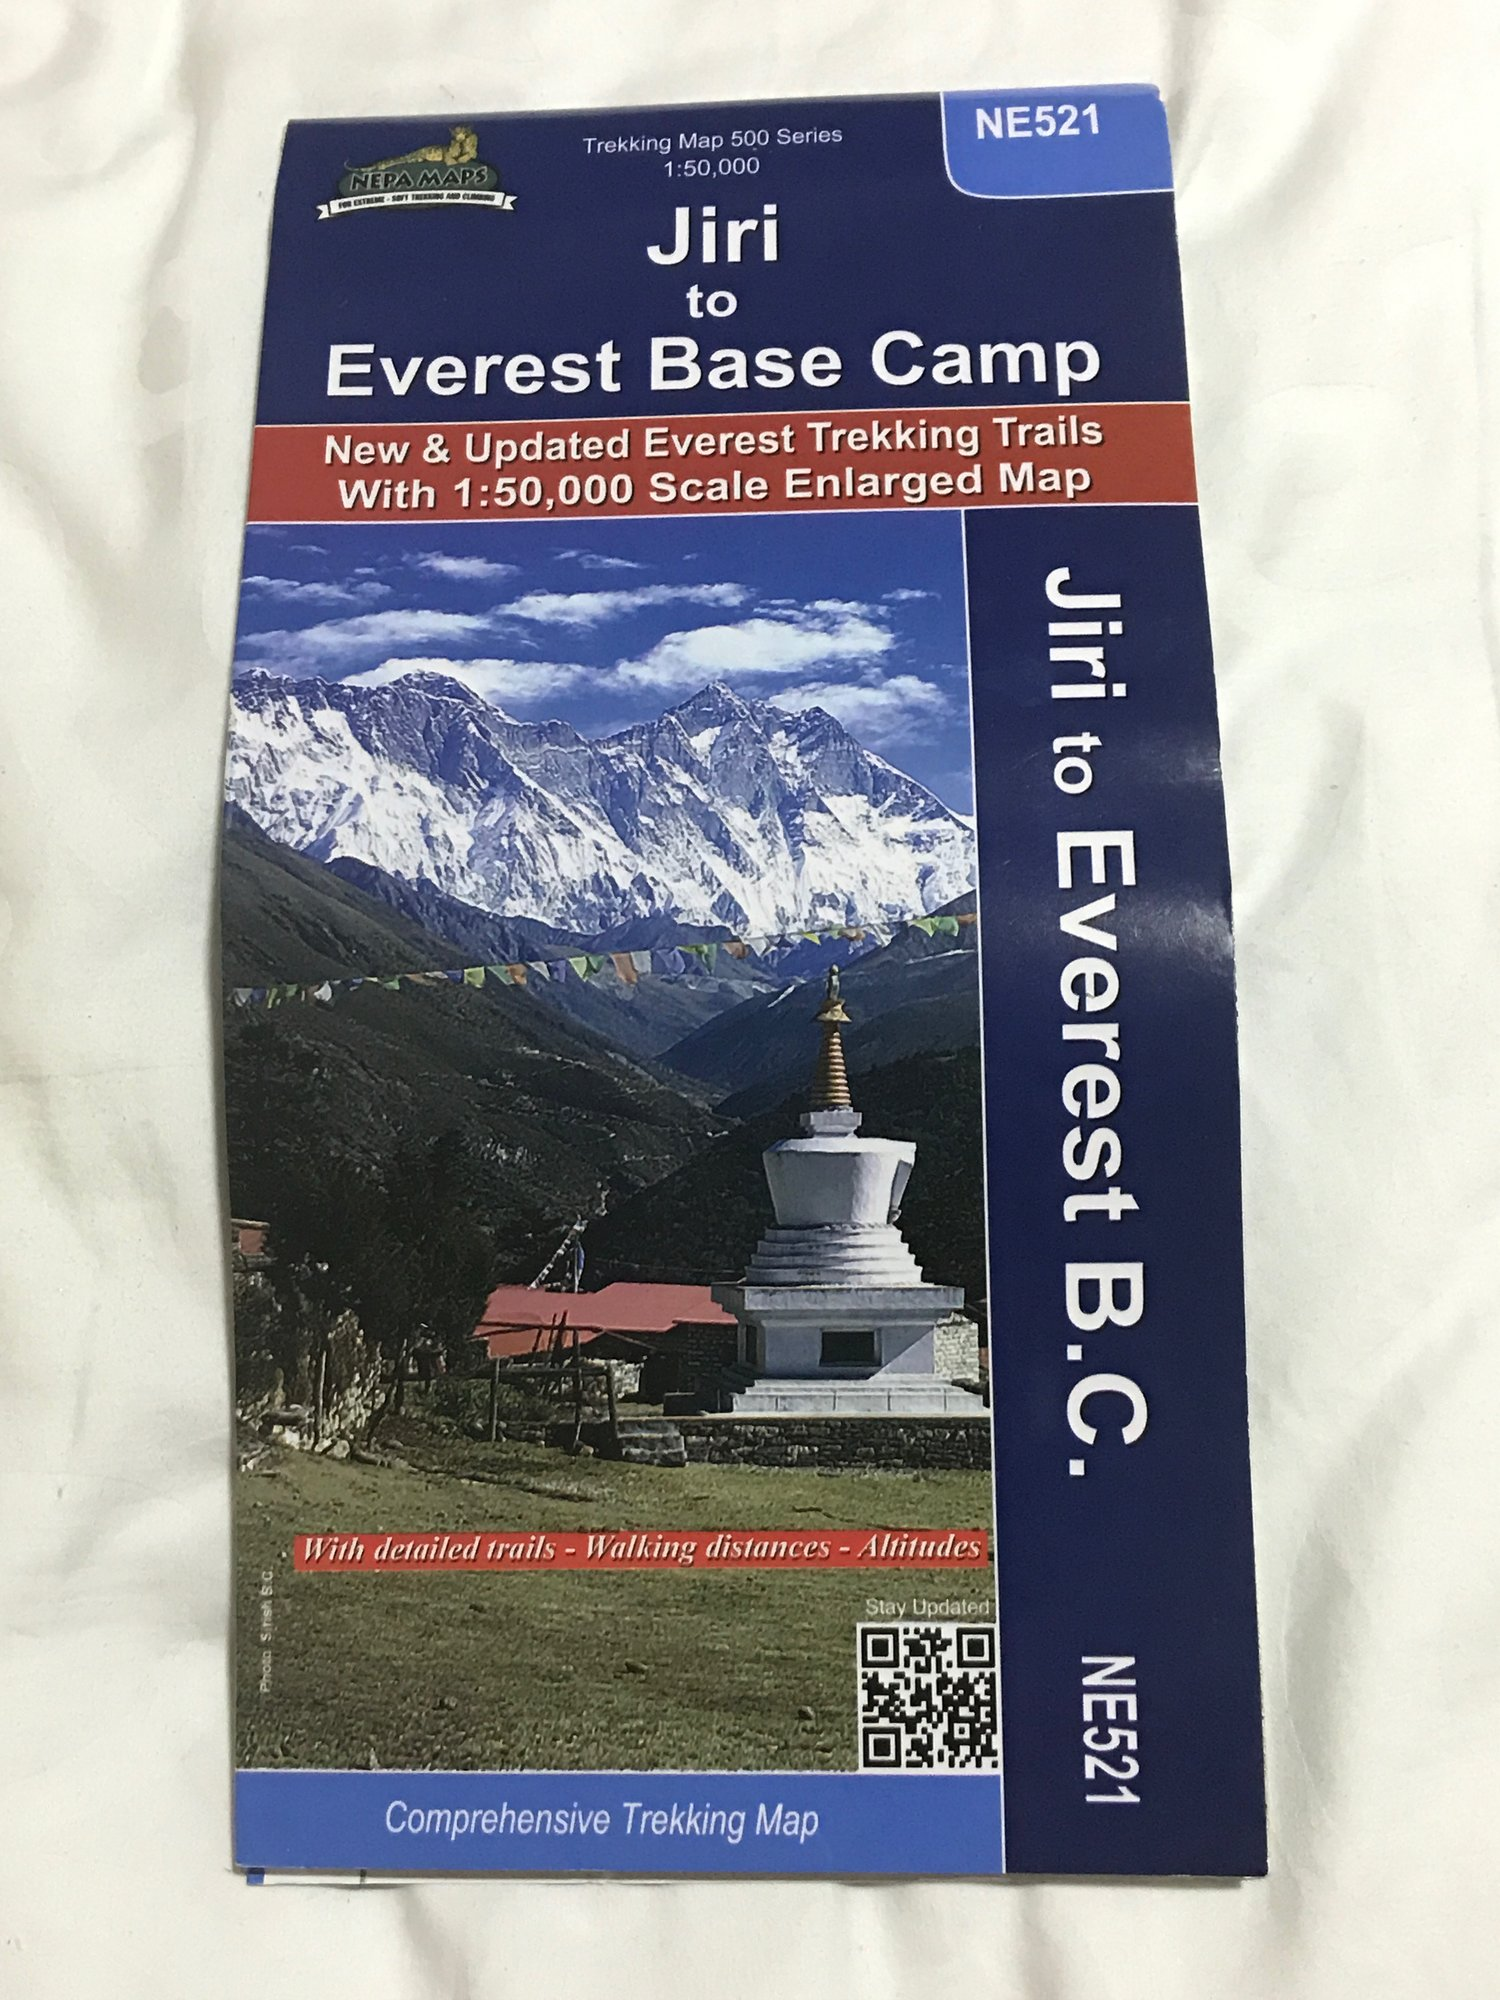 Everest Base Camp!